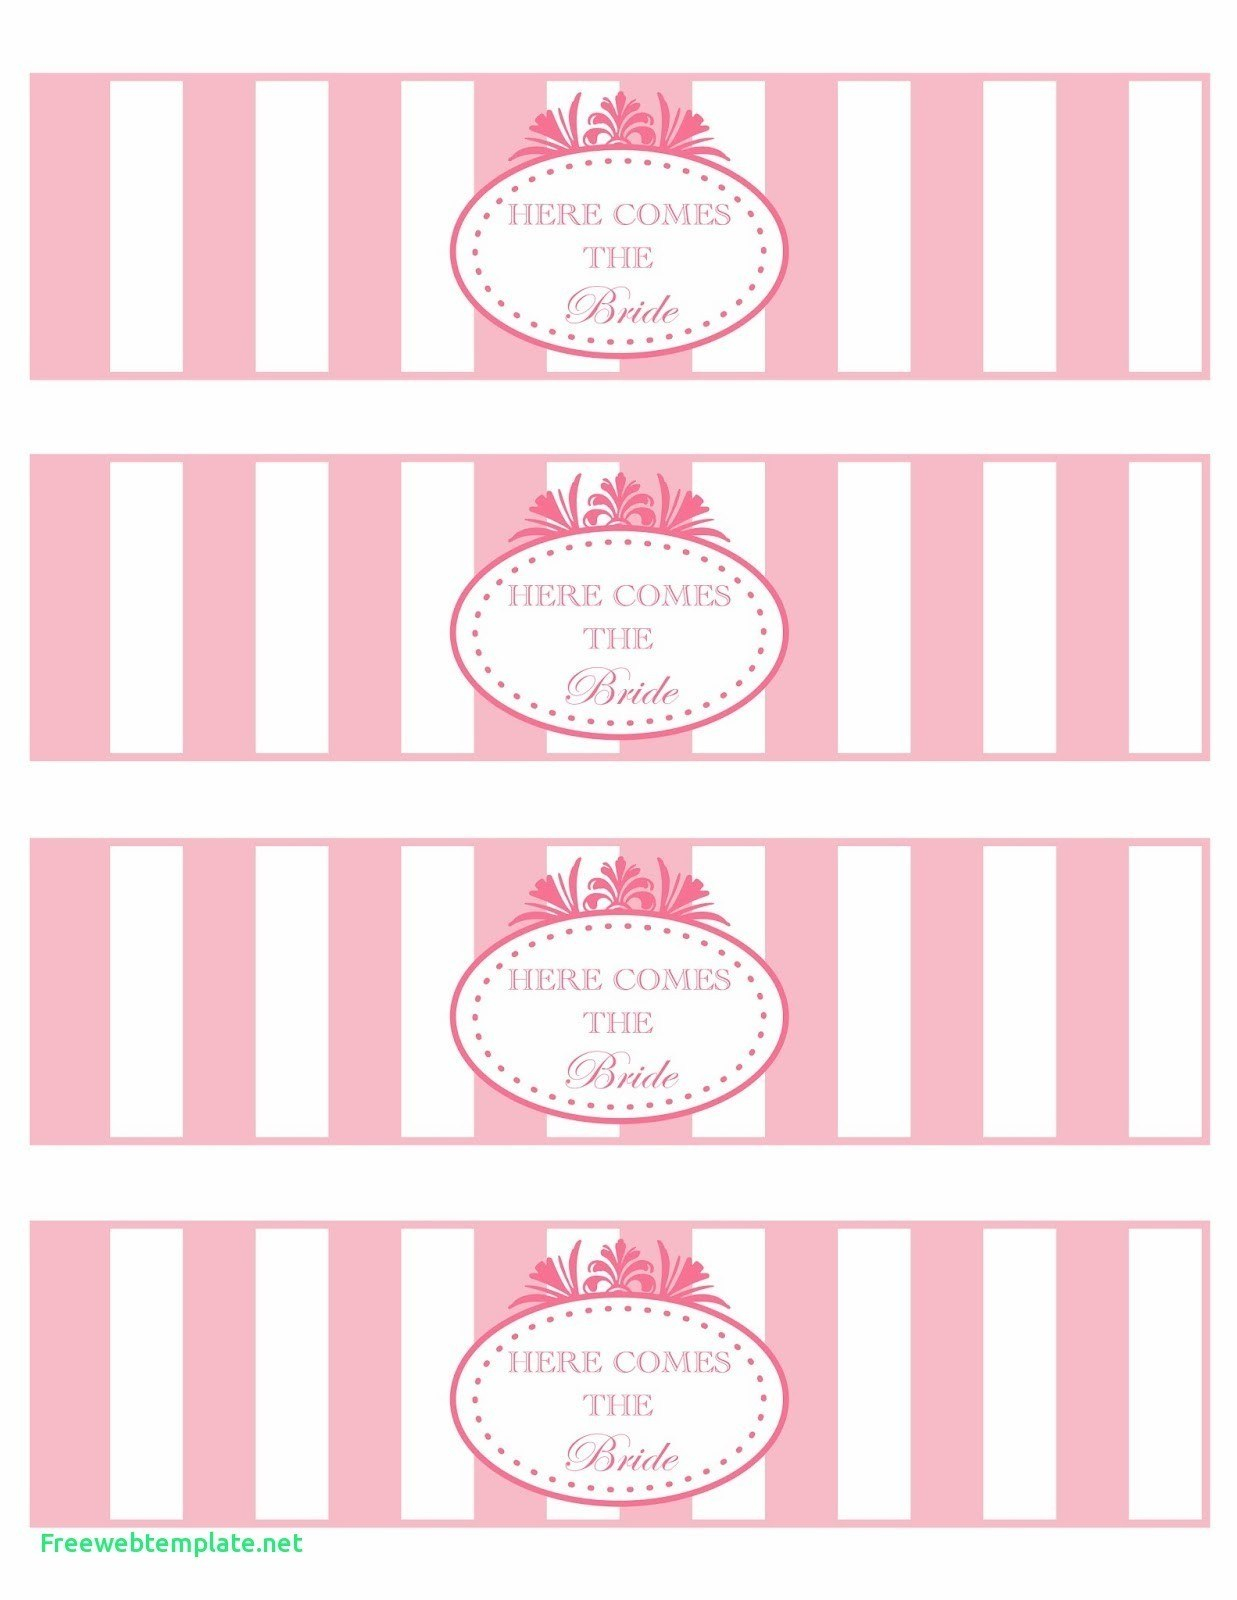 Free Water Bottle Label Template Ideas Printable Labels Wondrous Intended For Free Water Bottle Labels For Baby Shower Template